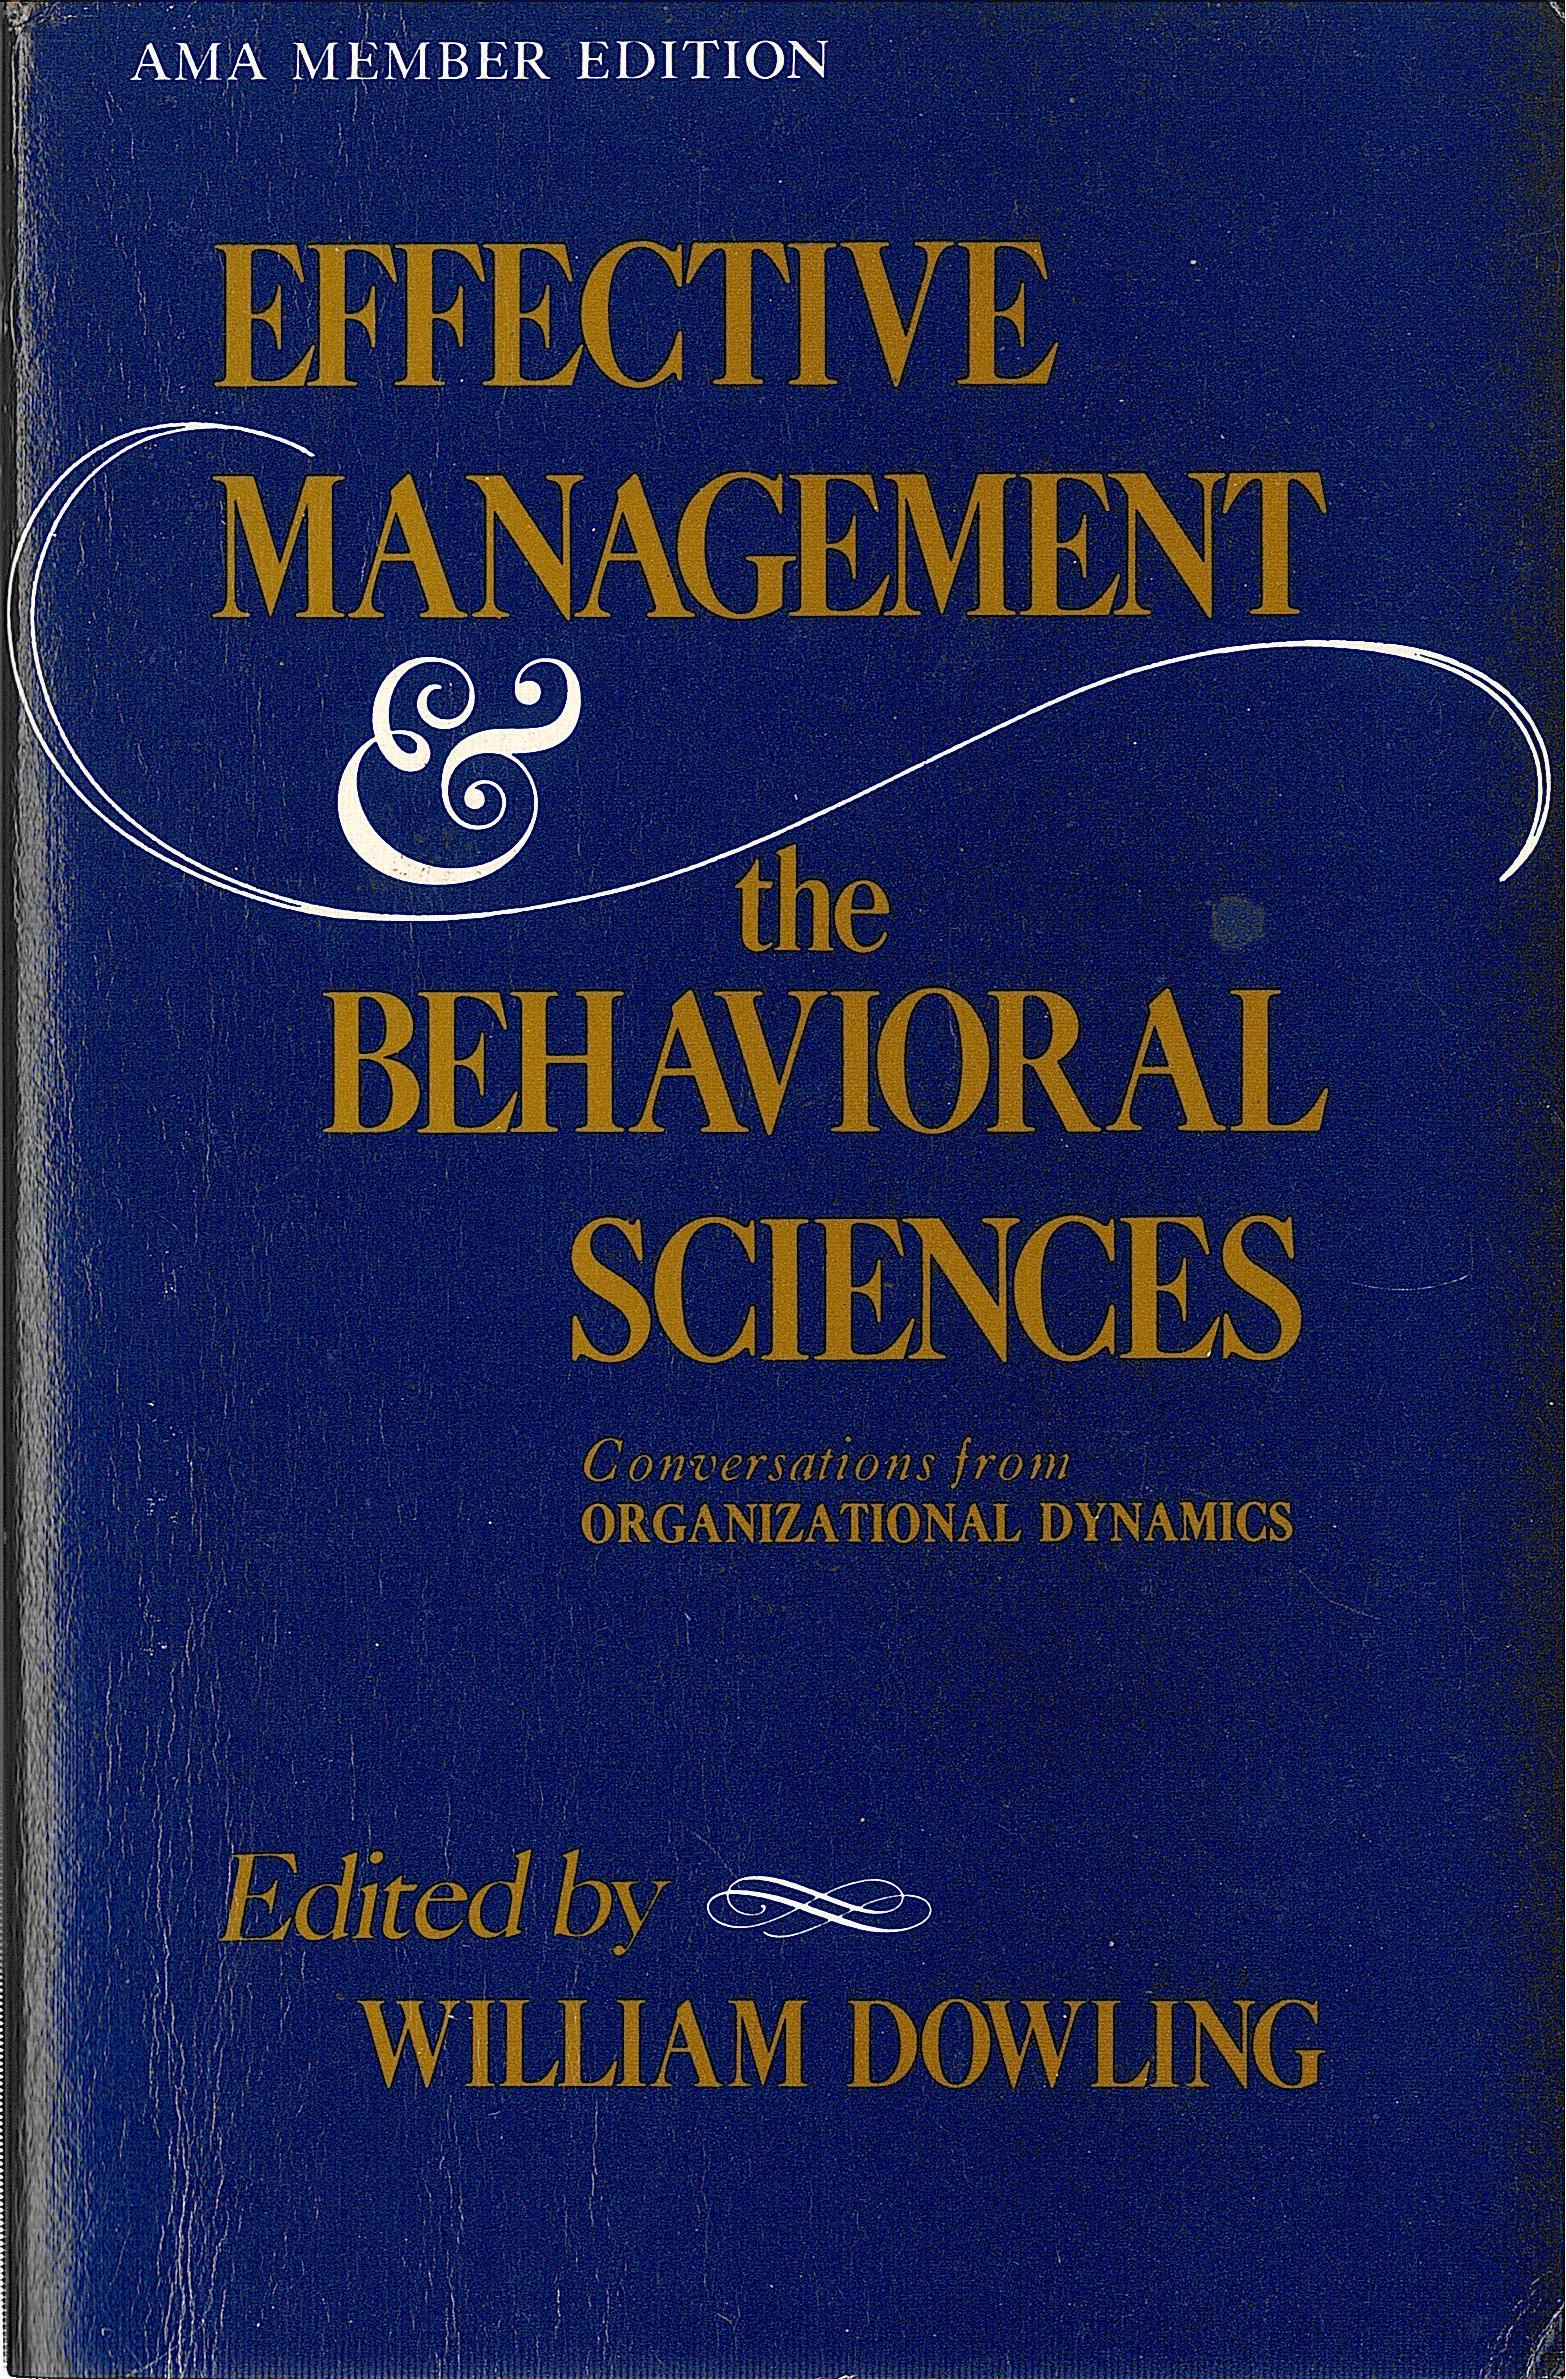 Effective Management and the Behavioral Sciences